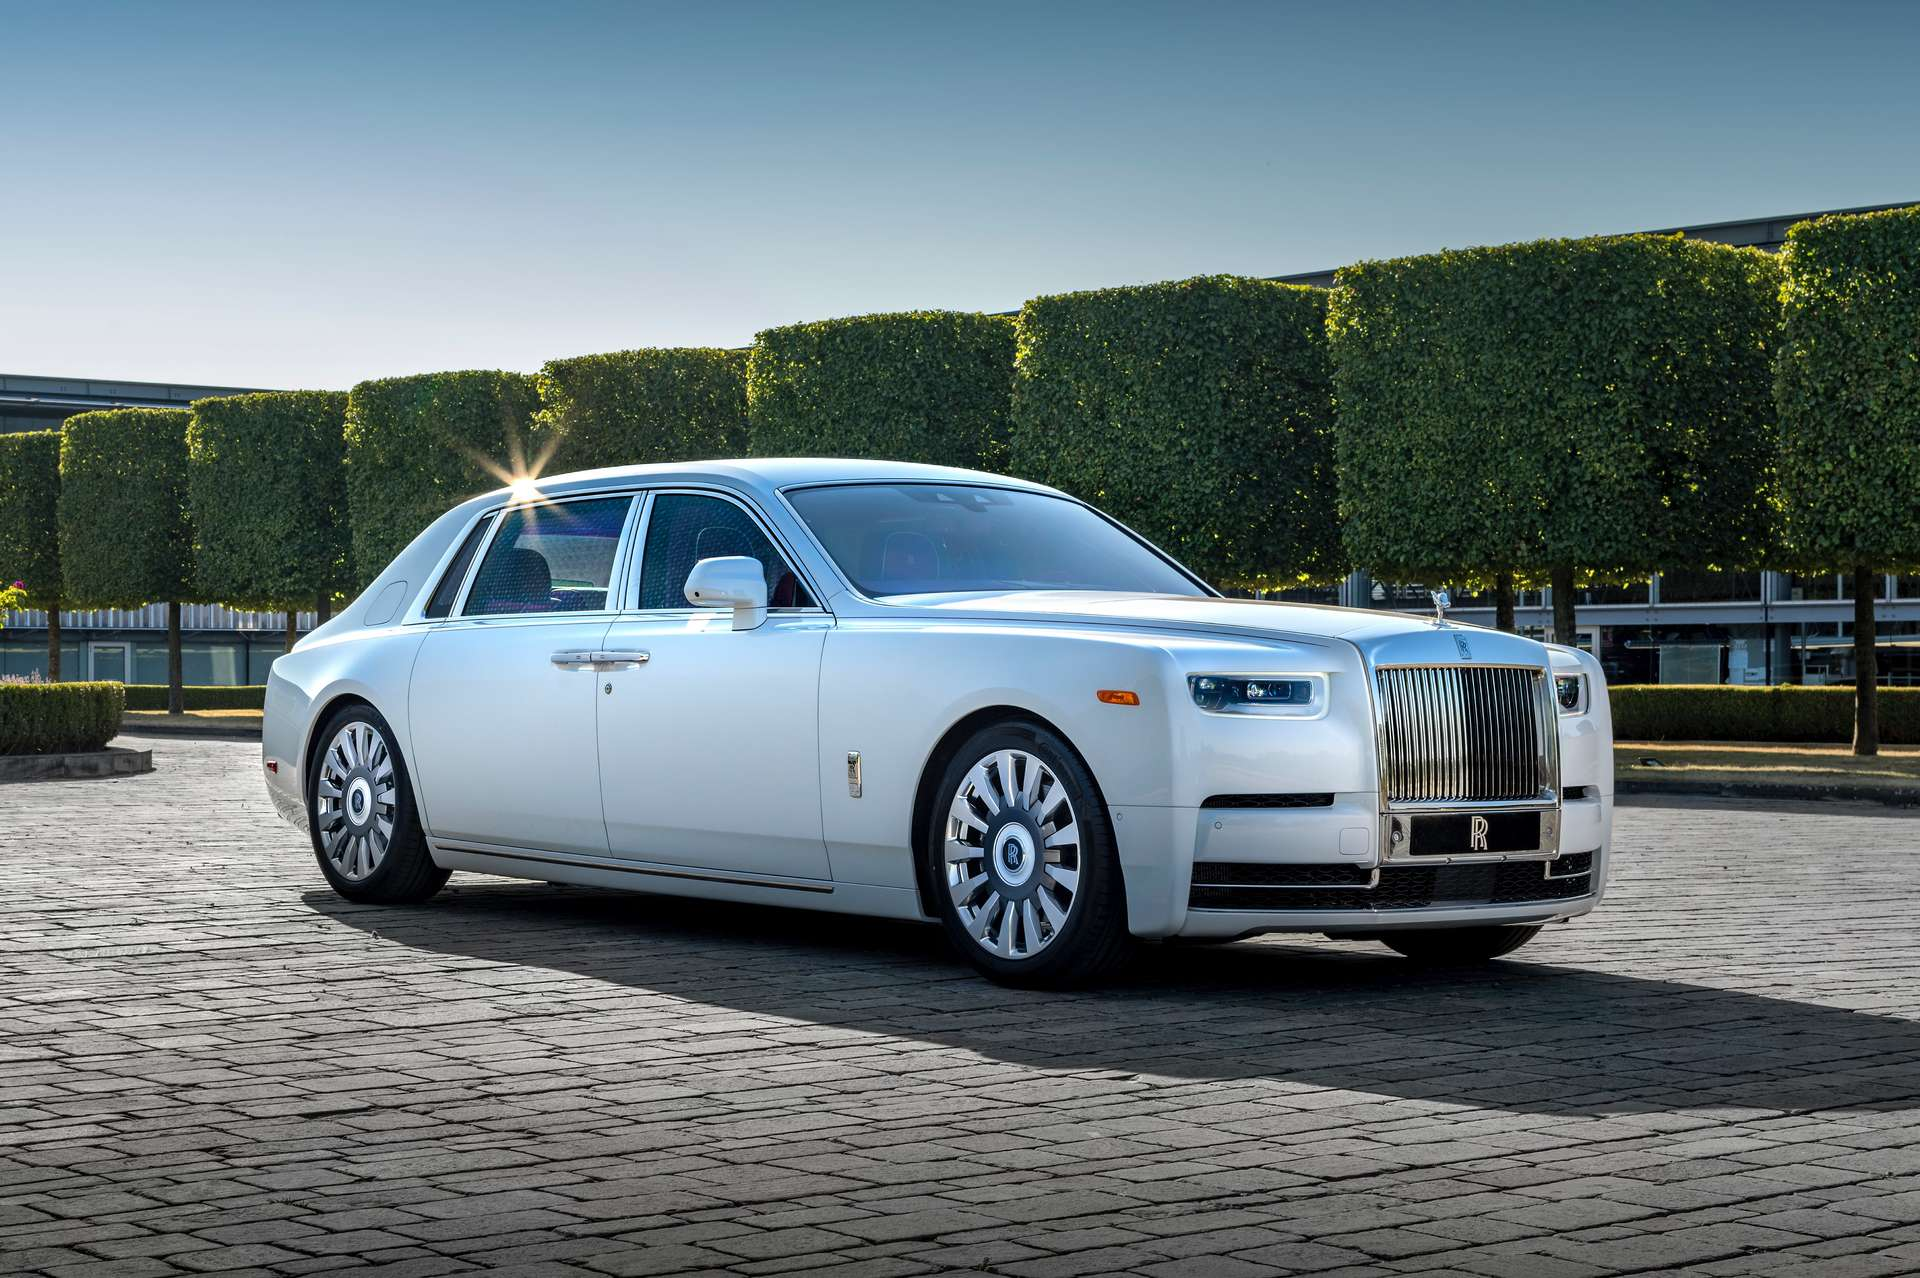 The front side profile of the Rolls-Royce Fux Phantom.